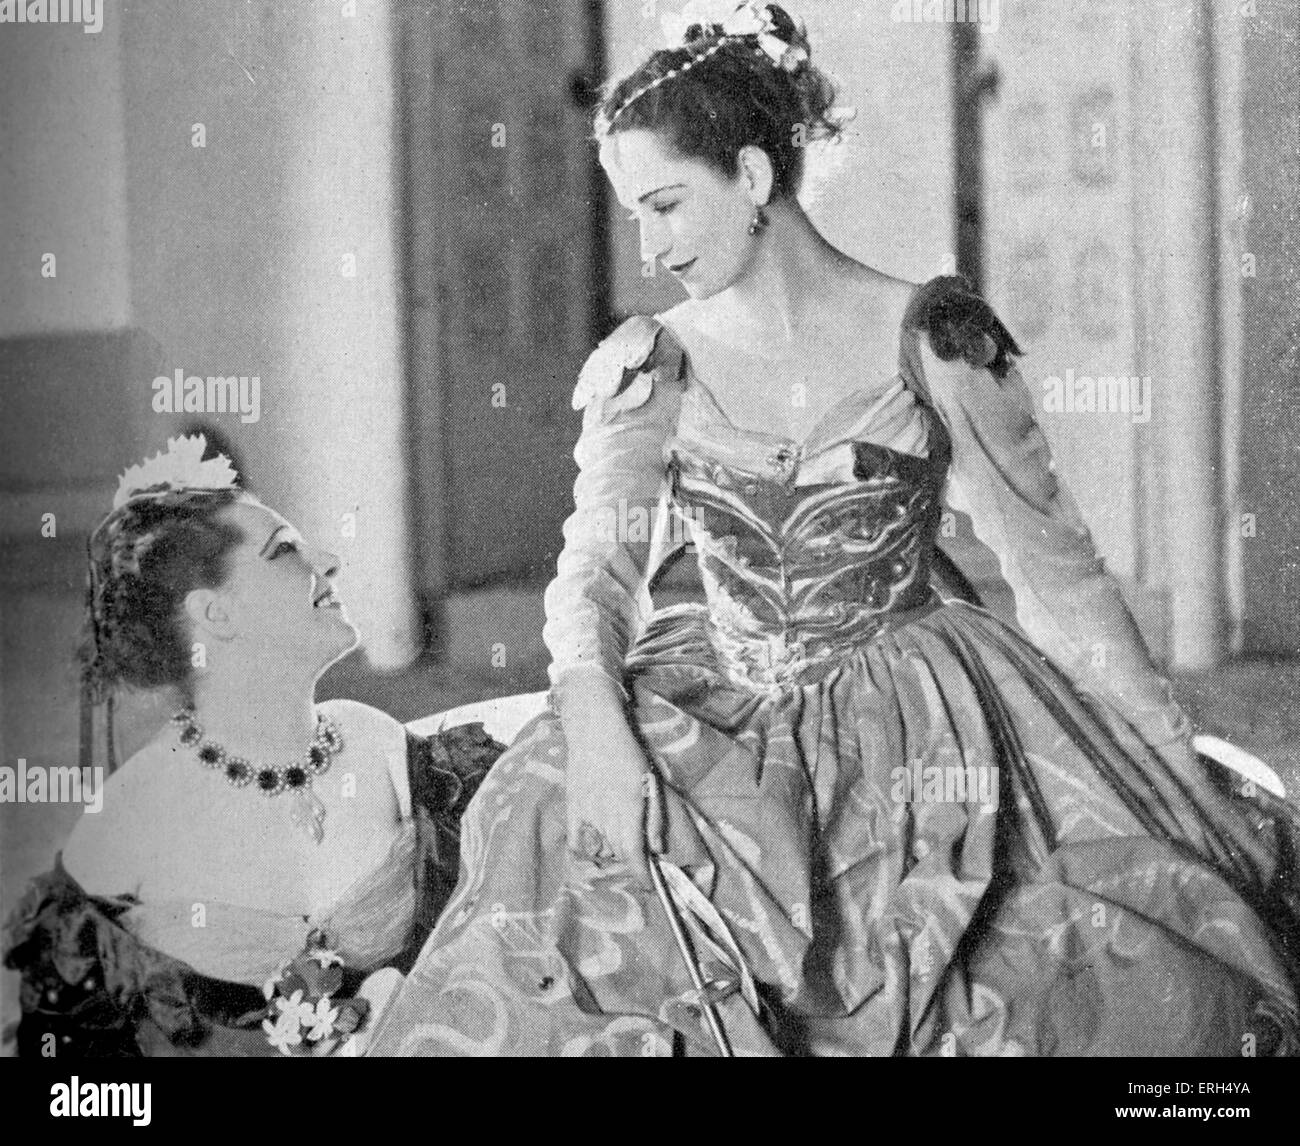 'The Merchant of Venice' by William Shakespeare with Angela Baddeley as Nerissa and Peggy Ashcroft as Portia, - Stock Image